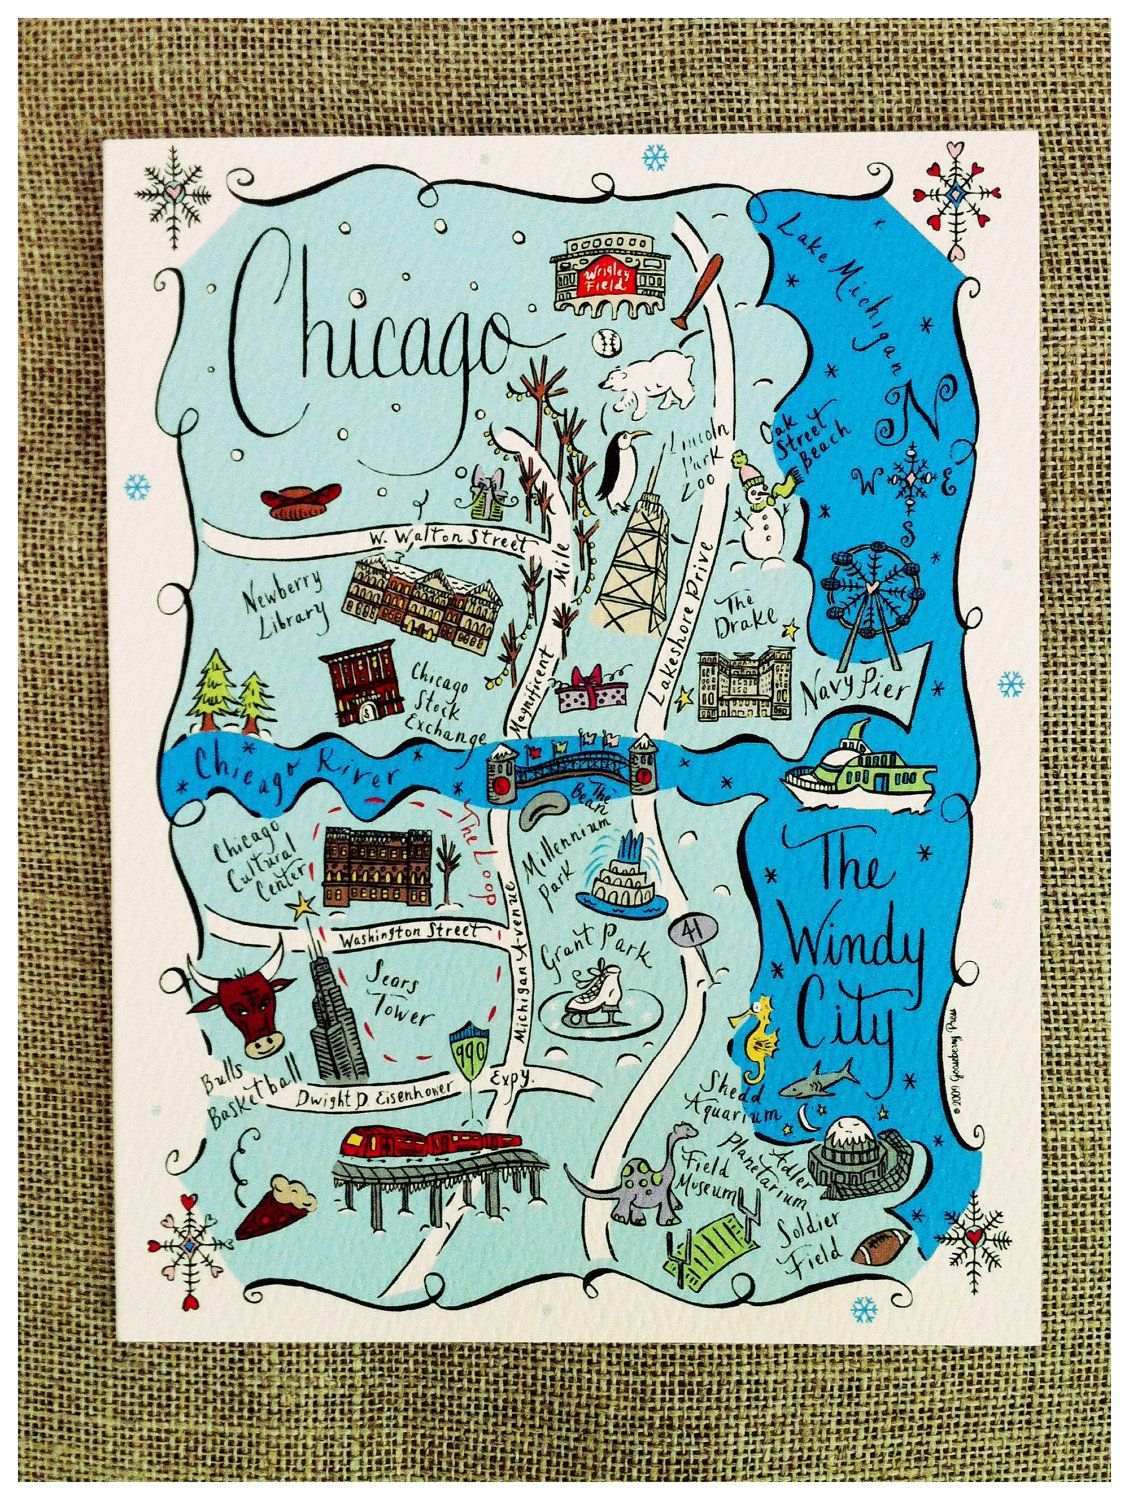 Chicago City Map Full Color Note Card Via Etsy For The Home - Chicago map etsy